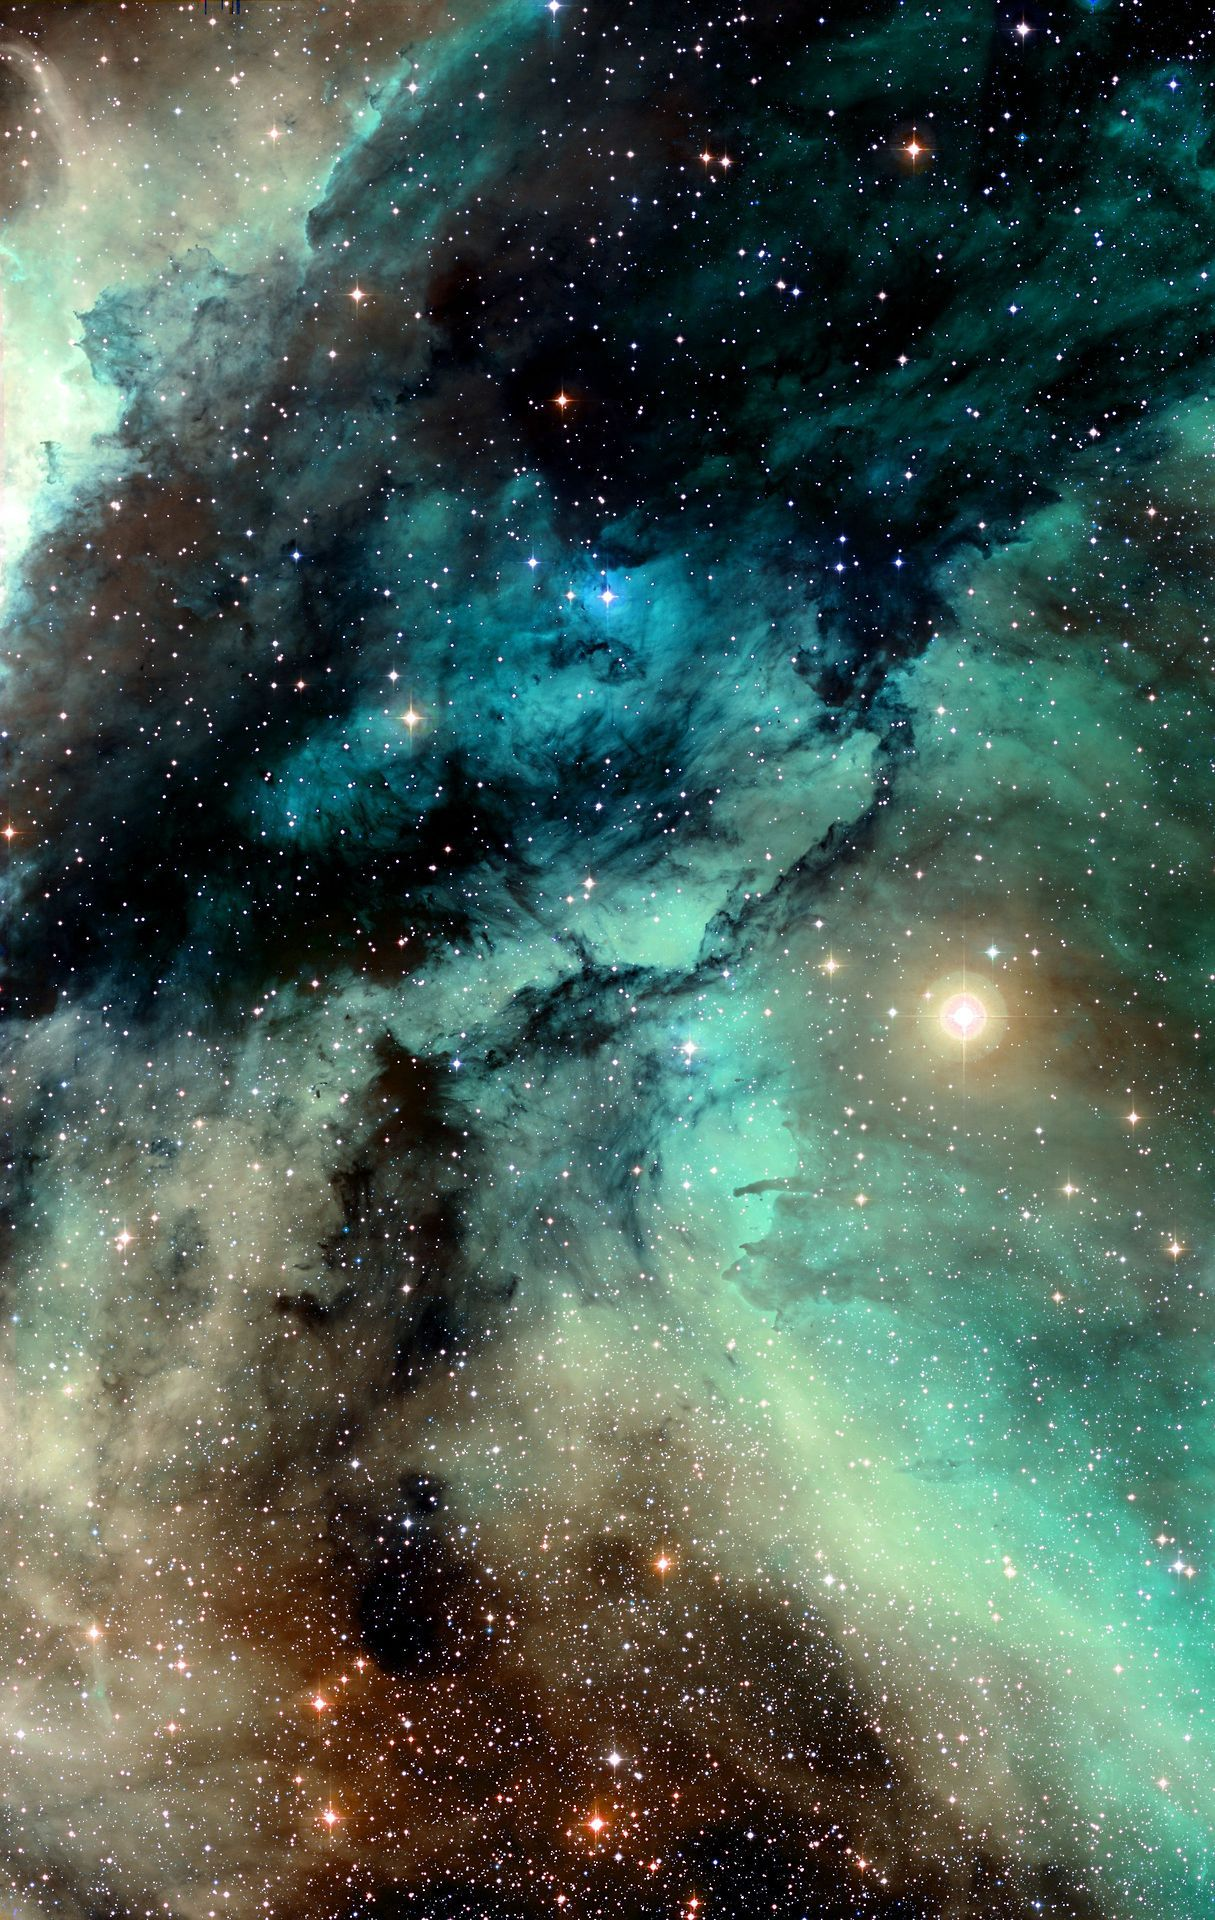 Wolf galaxy. The wonders of the universe, space oddities, stars, planets, cosmos, galaxies, nebulas and cosmic inclinations.